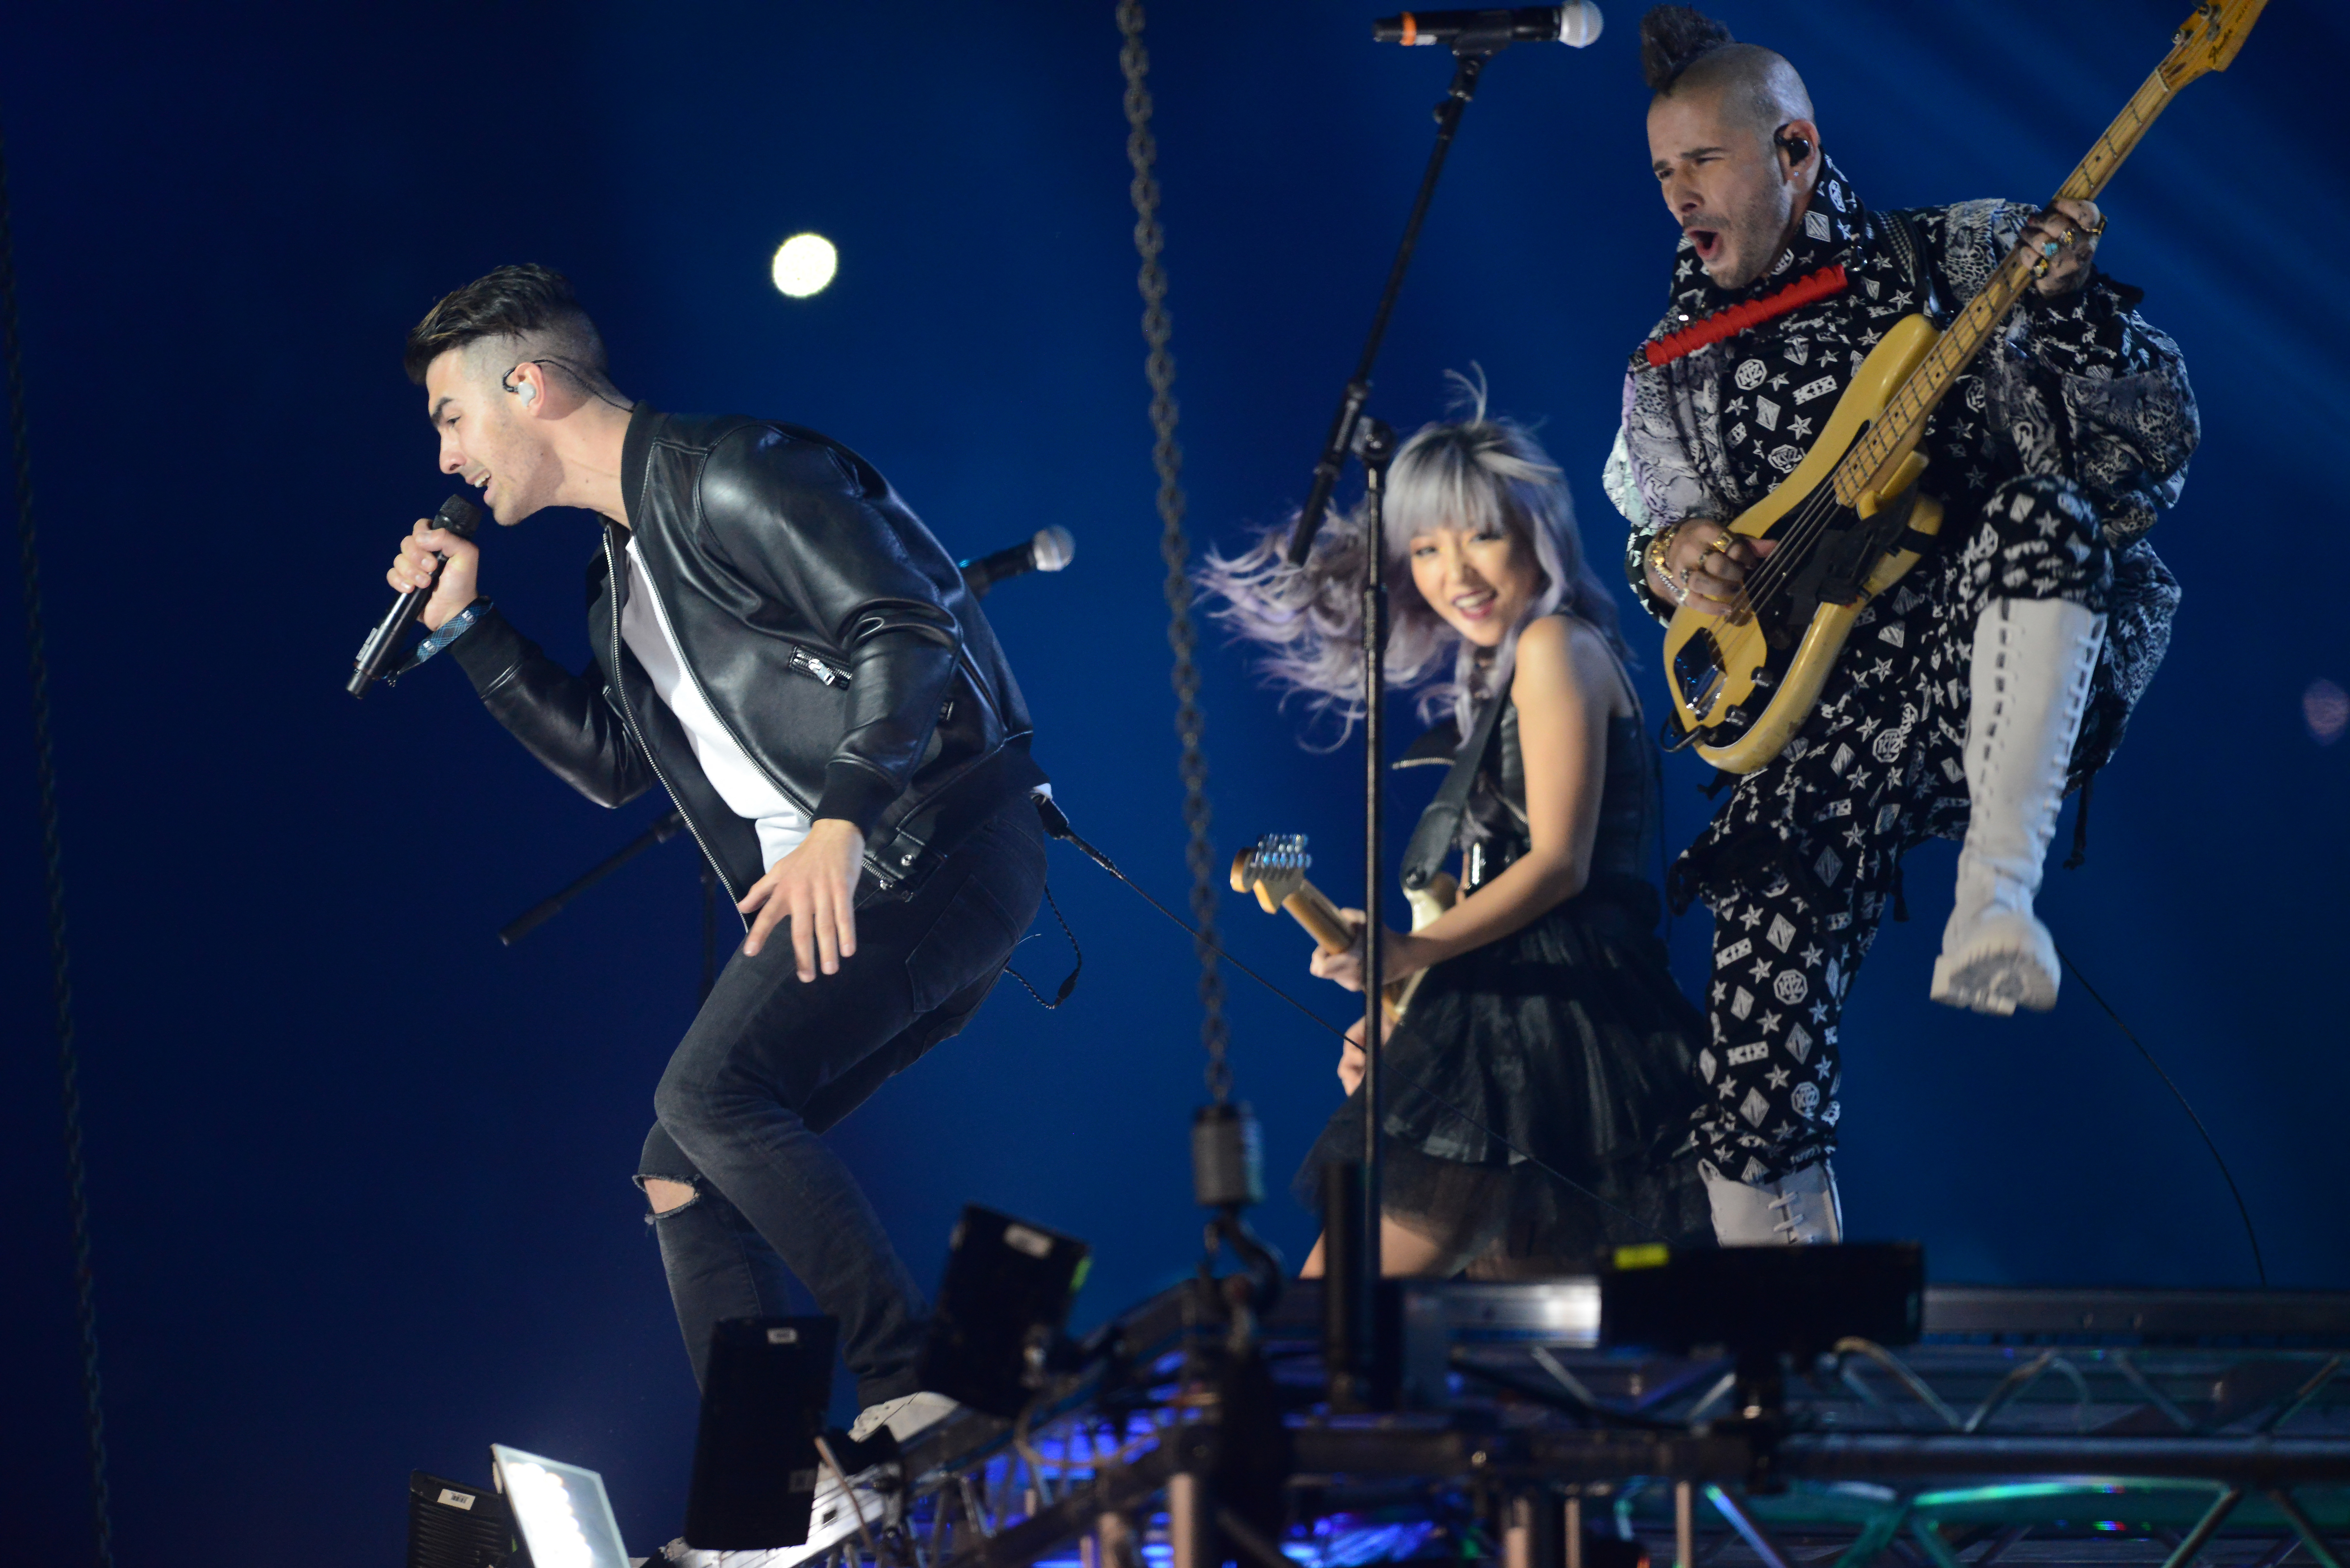 Joe Jonas, JinJoo Lee and Cole Whittle of DNCE performs on stage during the MTV Europe Music Awards 2016 in Rotterdam, Netherlands on November 6, 2016.